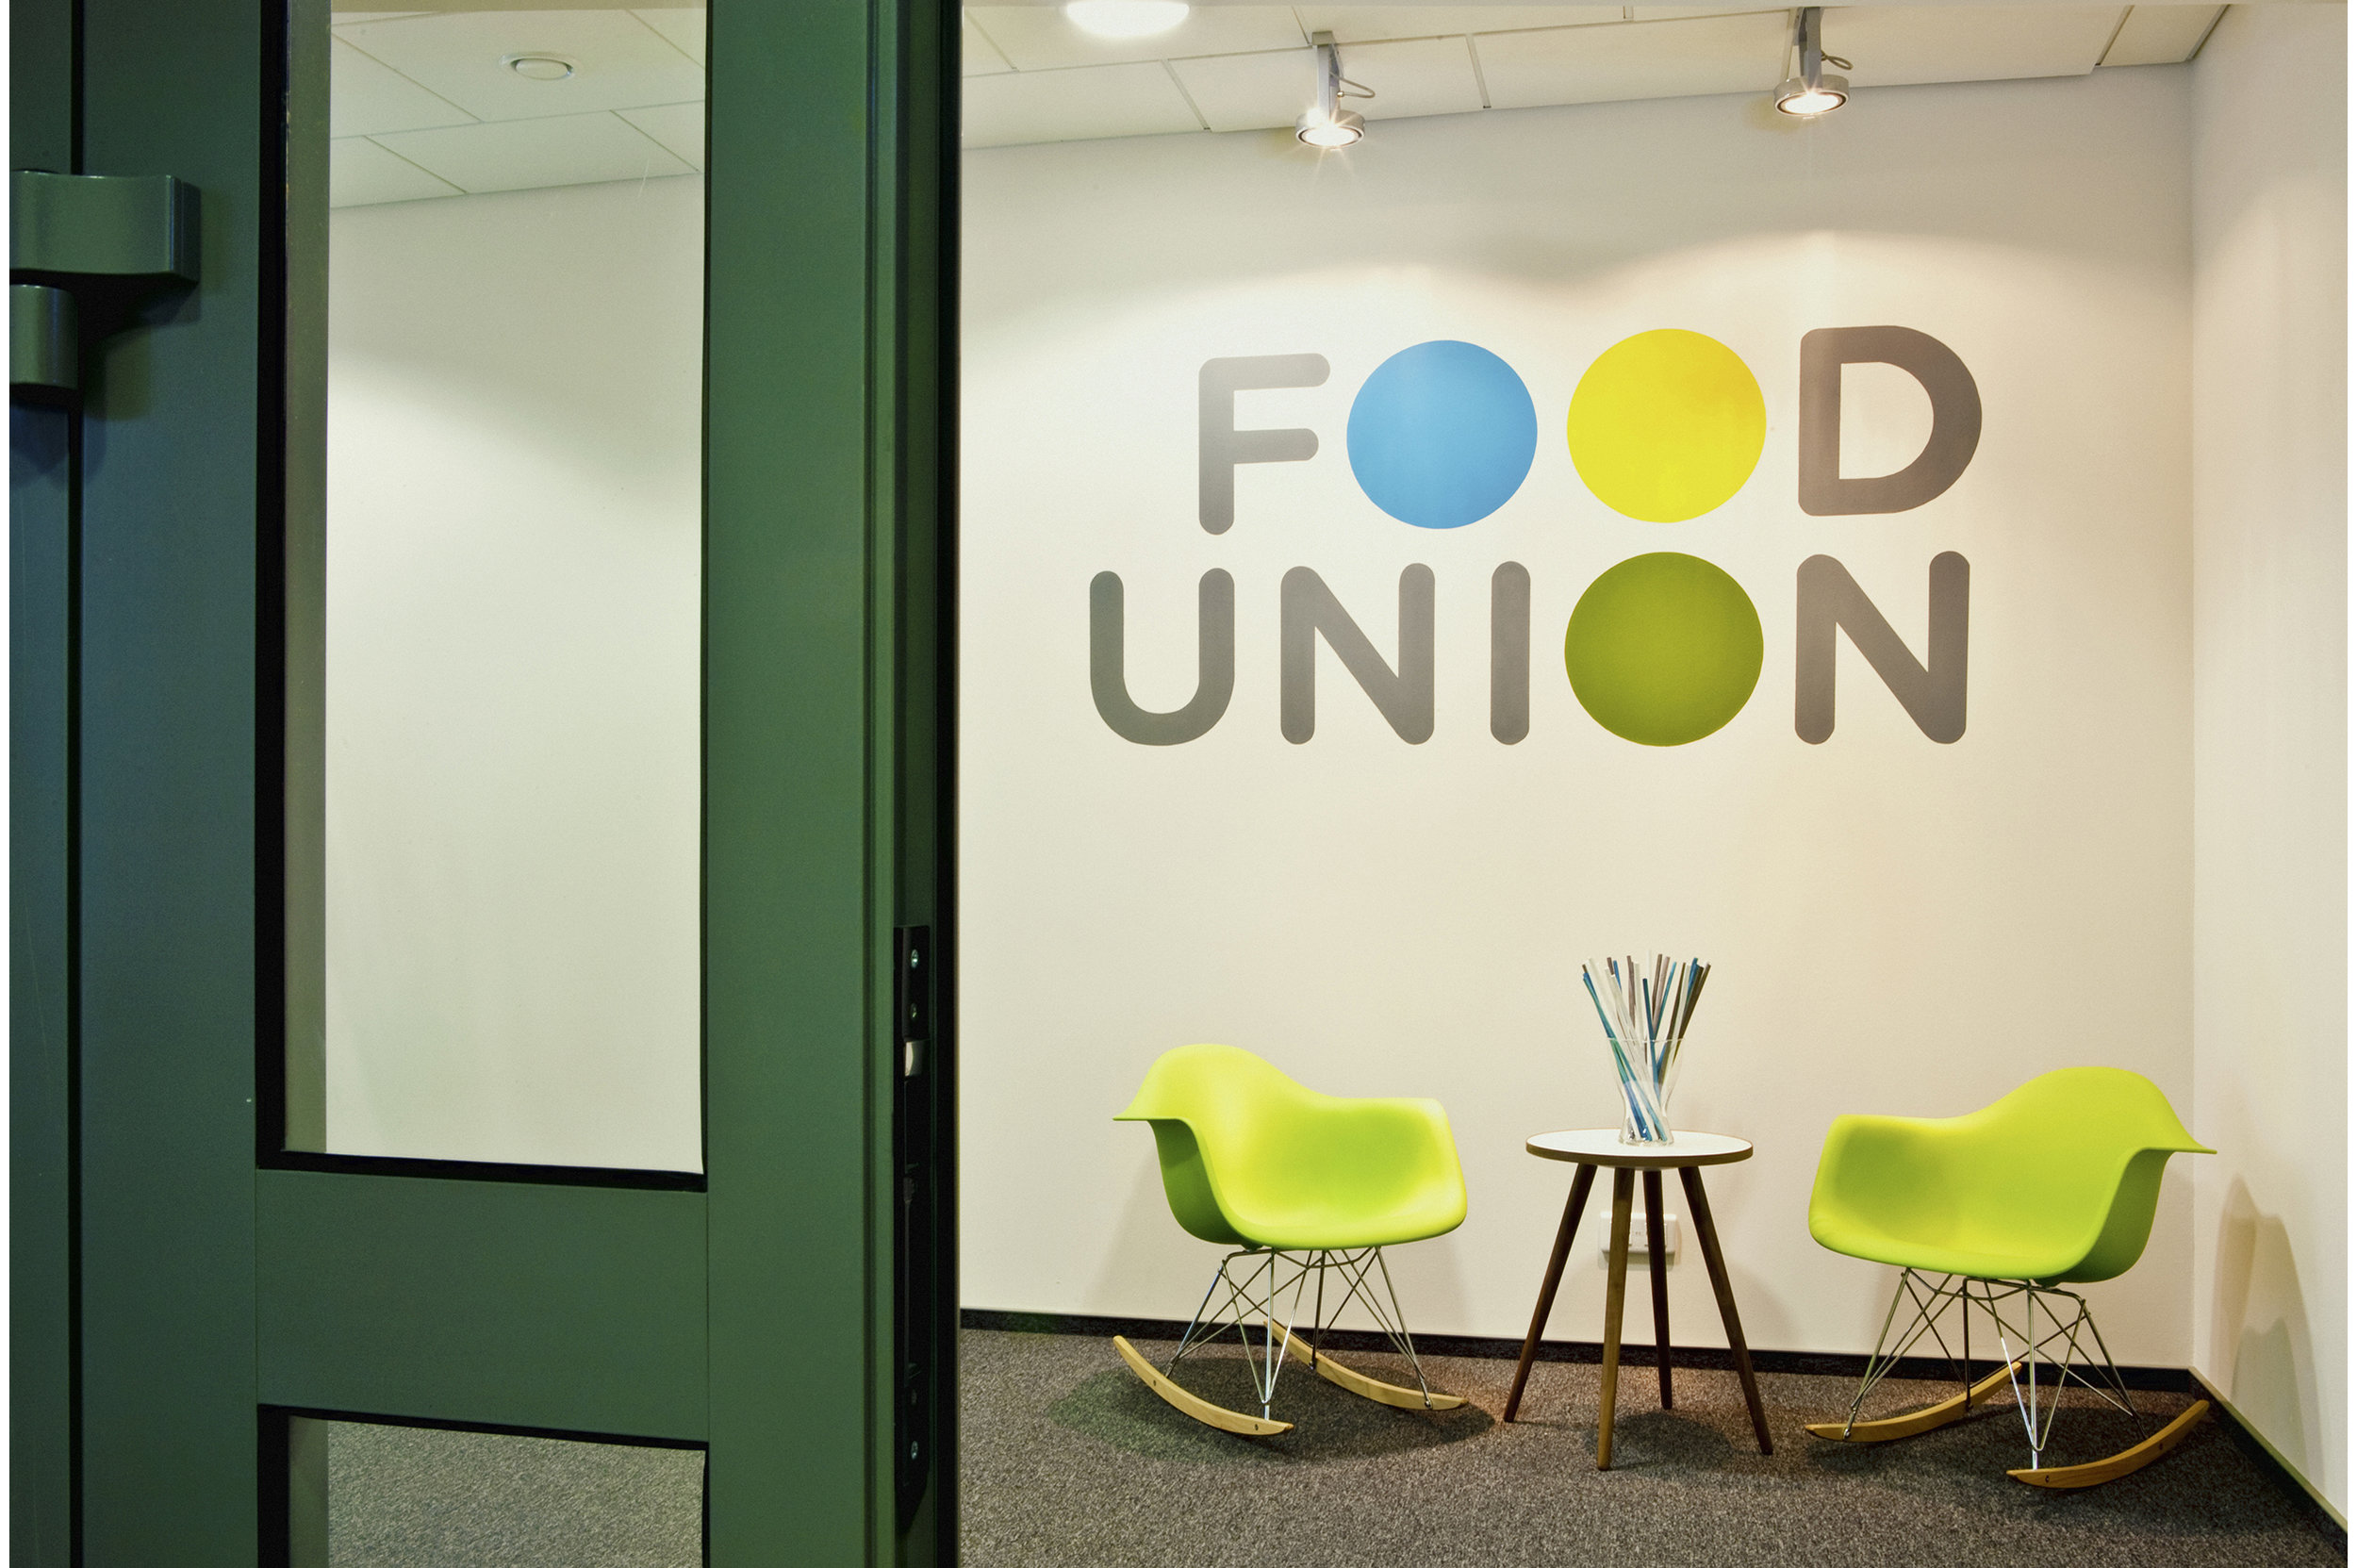 Food Union office interior. Entrance area